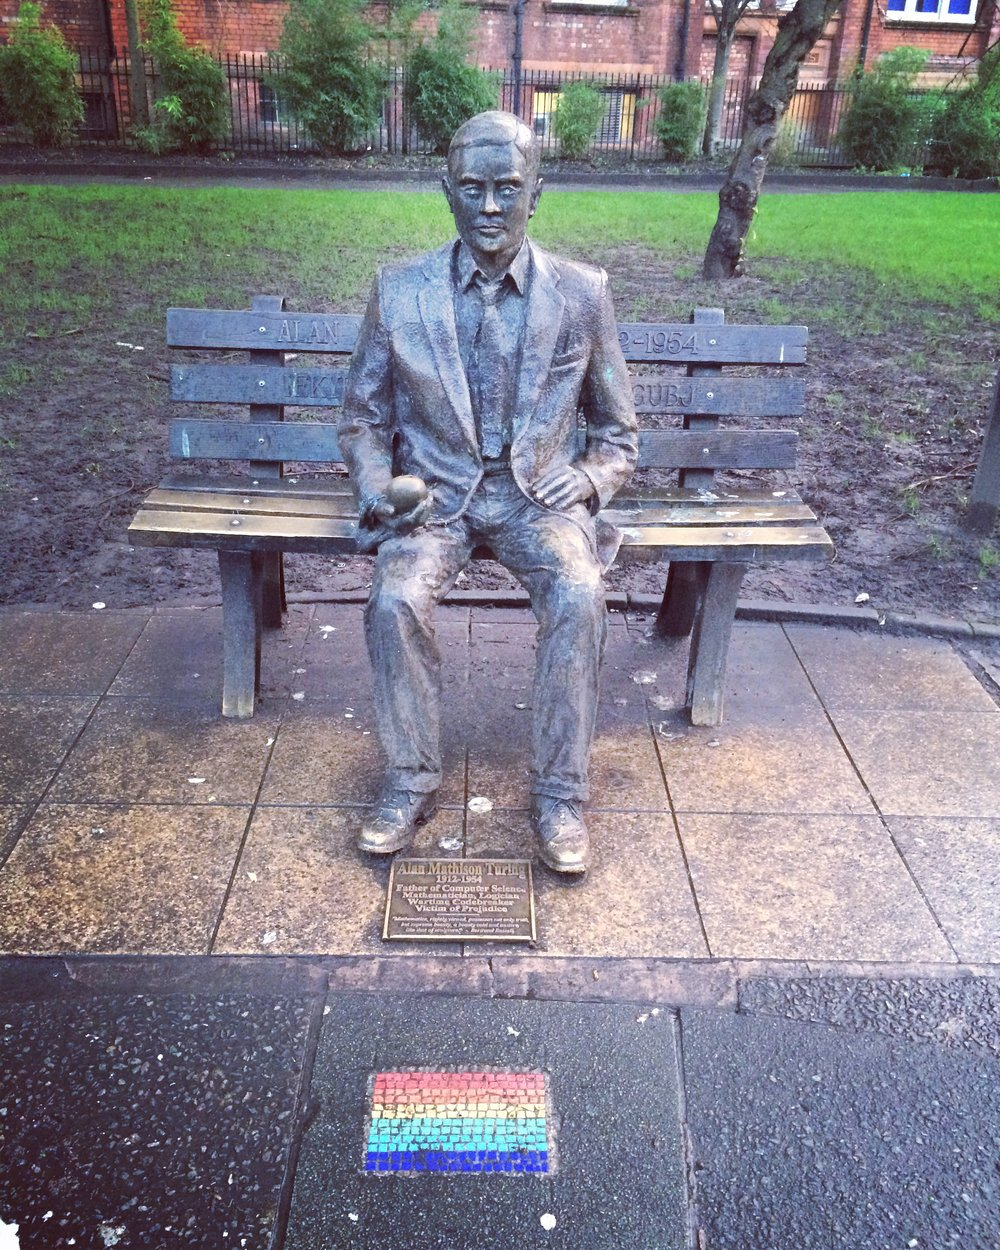 Tribute to Alan Turing in Manchester